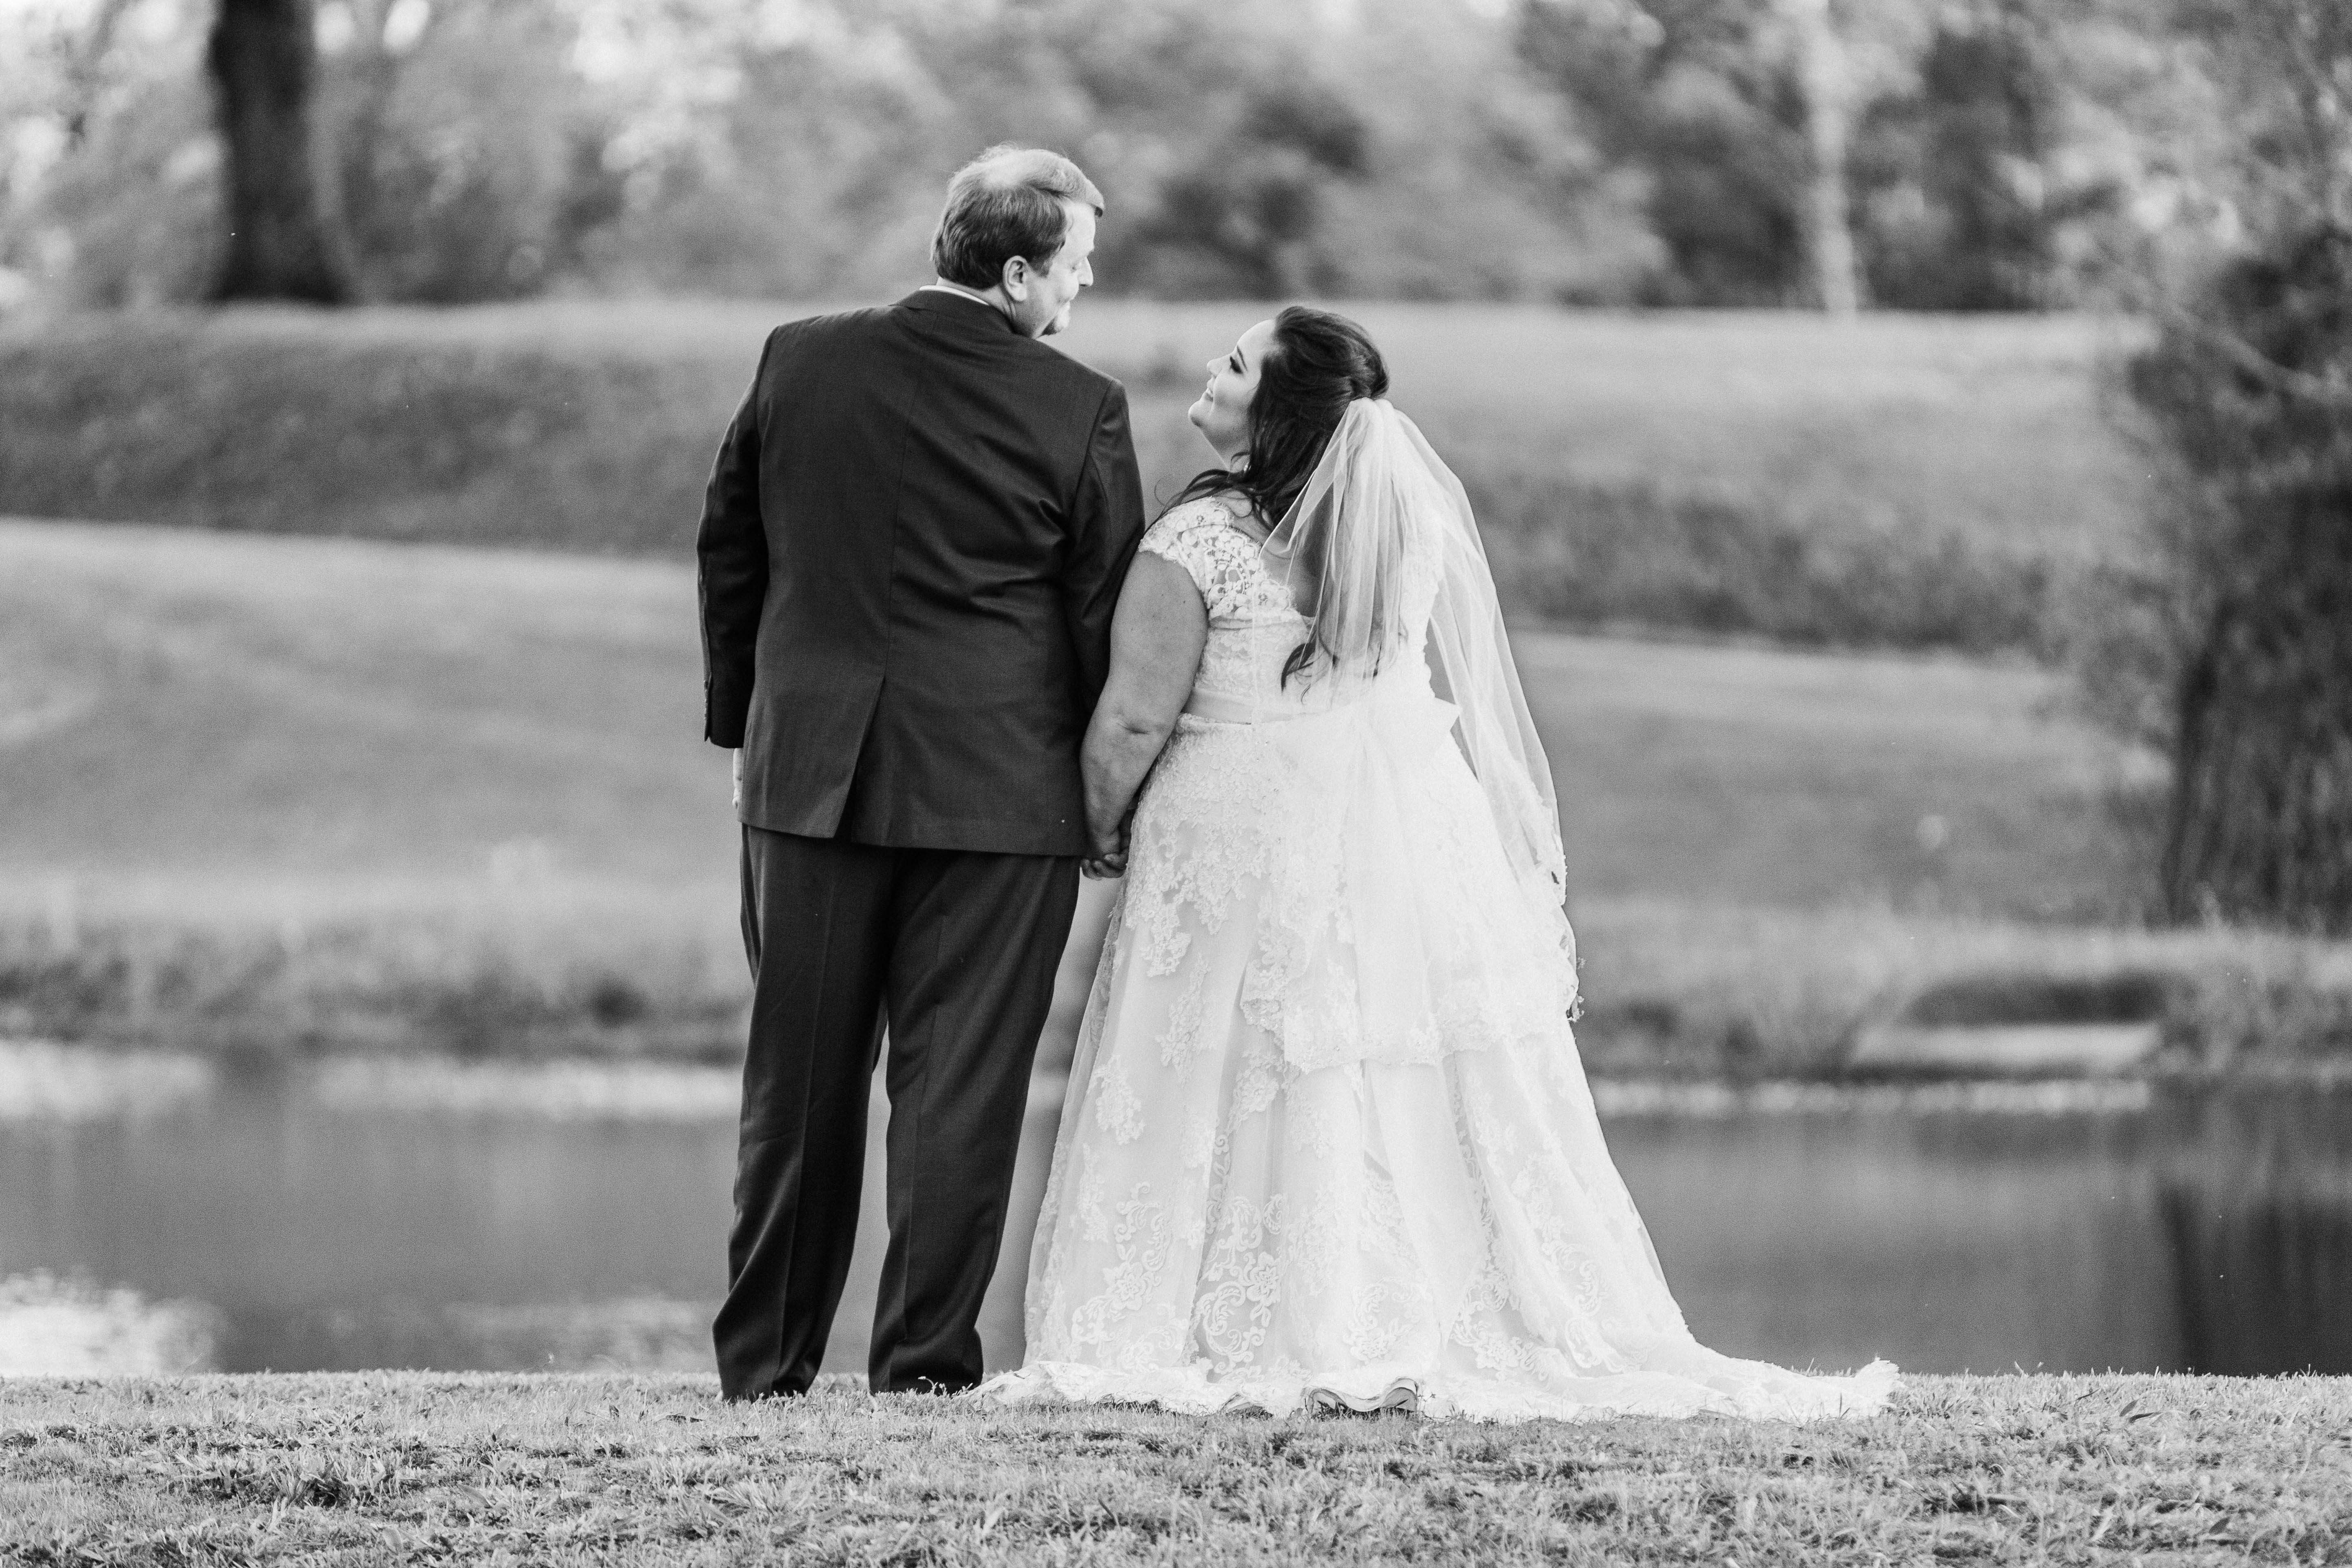 CAHOON_WEDDING_BIRMINGHAM_ALABAMA_WEDDING_PHOTOGRAPHY_68